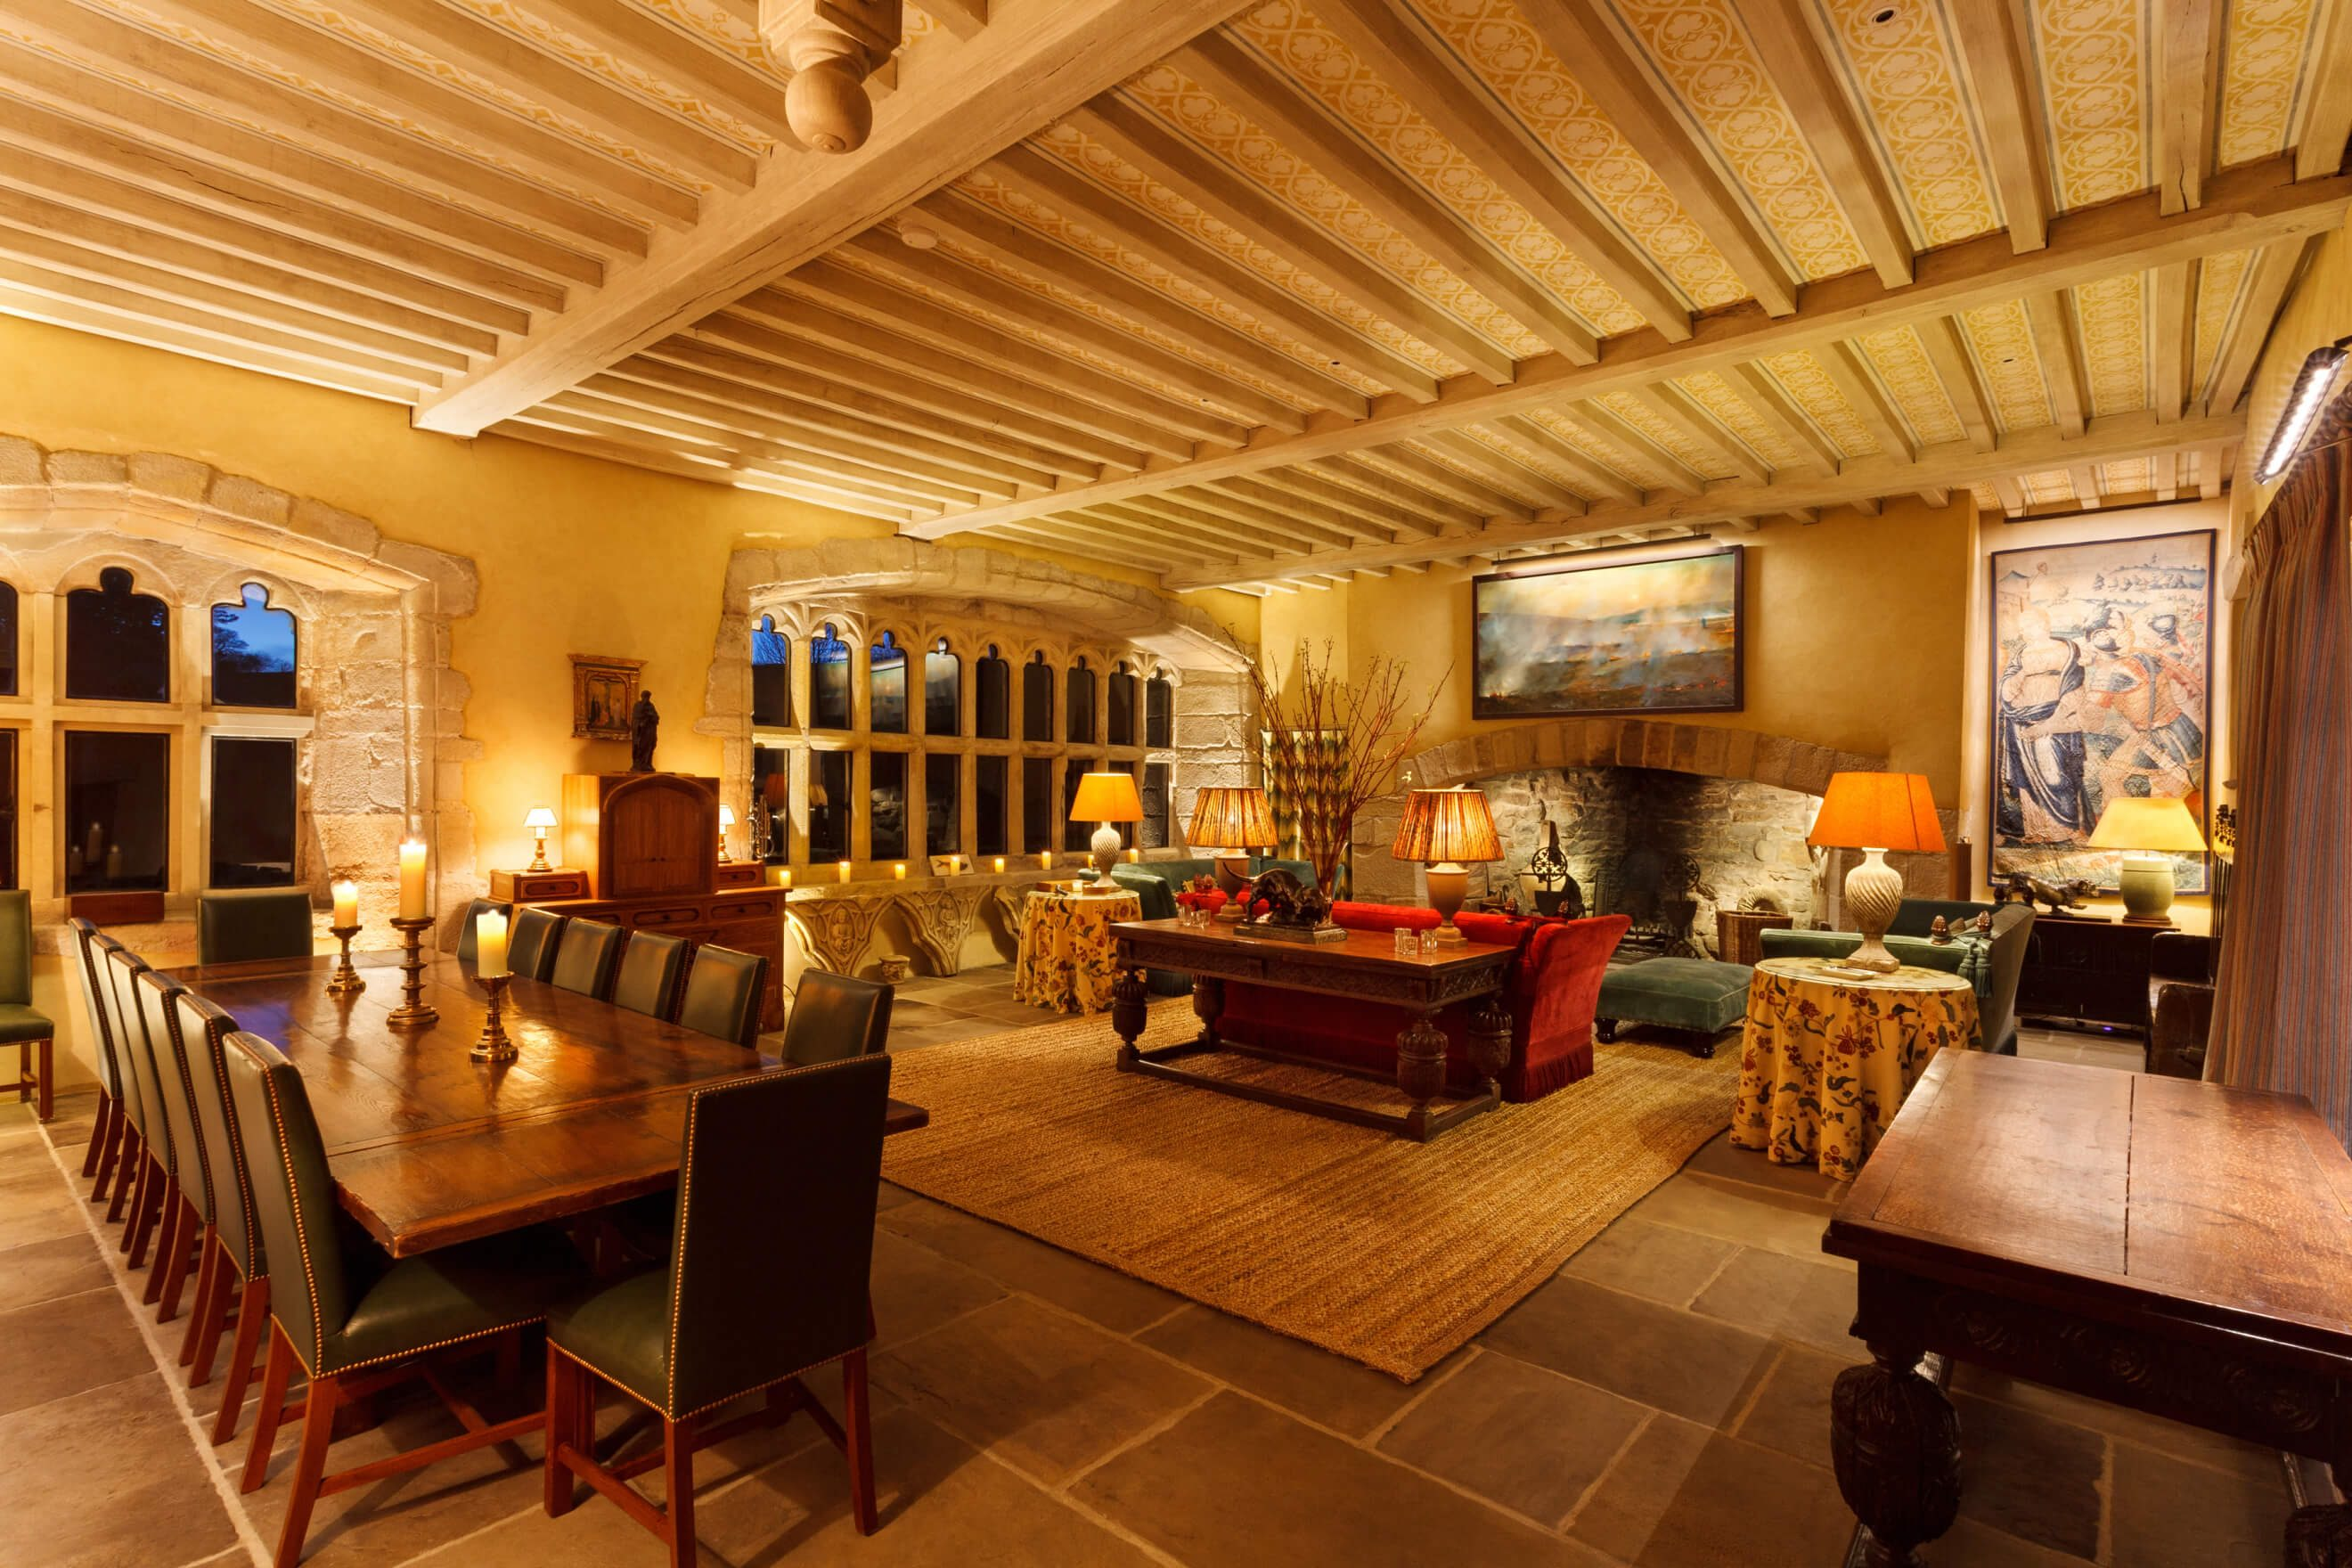 Medieval hall with uplights, candles, artwork lighting and table lamps